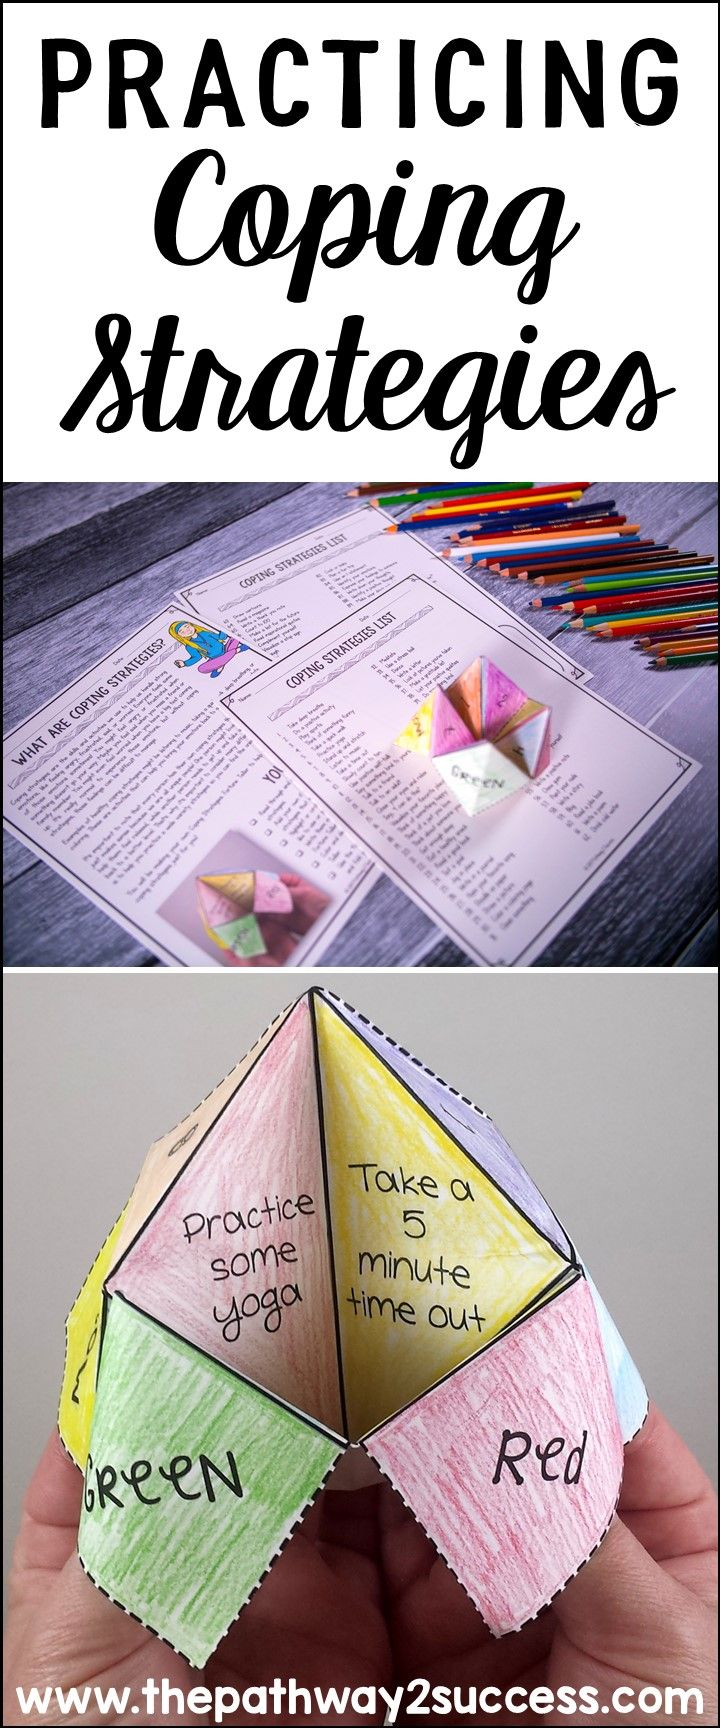 How to practice coping strategies with a craft and art activity. Great activity for kids and young adults who need support for managing emotions. #pathway2success #copingstrategies #specialeducation